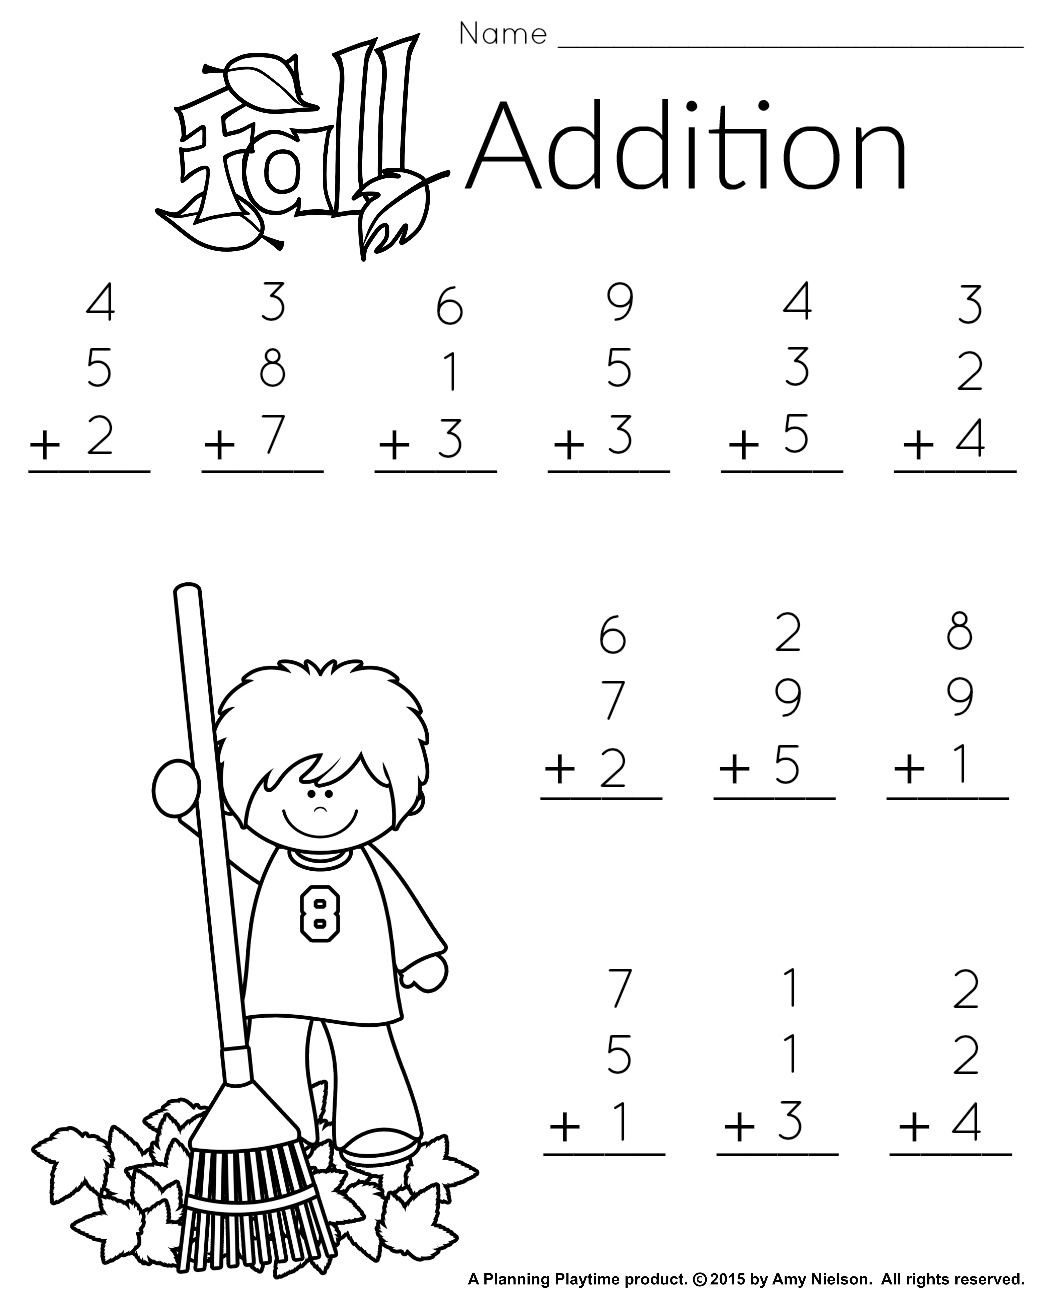 1St Grade Math And Literacy Worksheets With A Freebie! | Teachers - Free Printable Addition Worksheets For 1St Grade